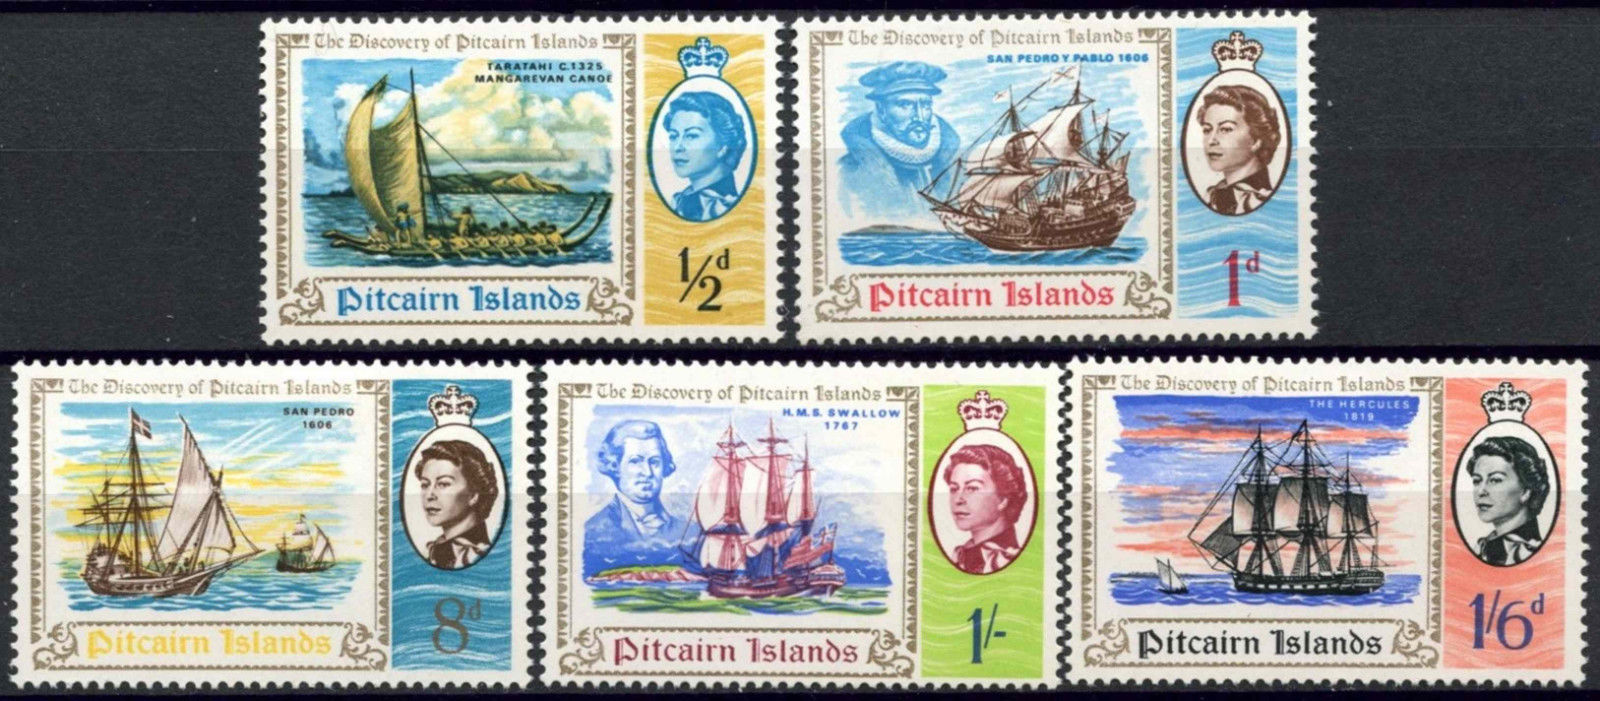 1967 PIT - SG64-68 Discovery of Pitcairn Islands Set (5) MNH